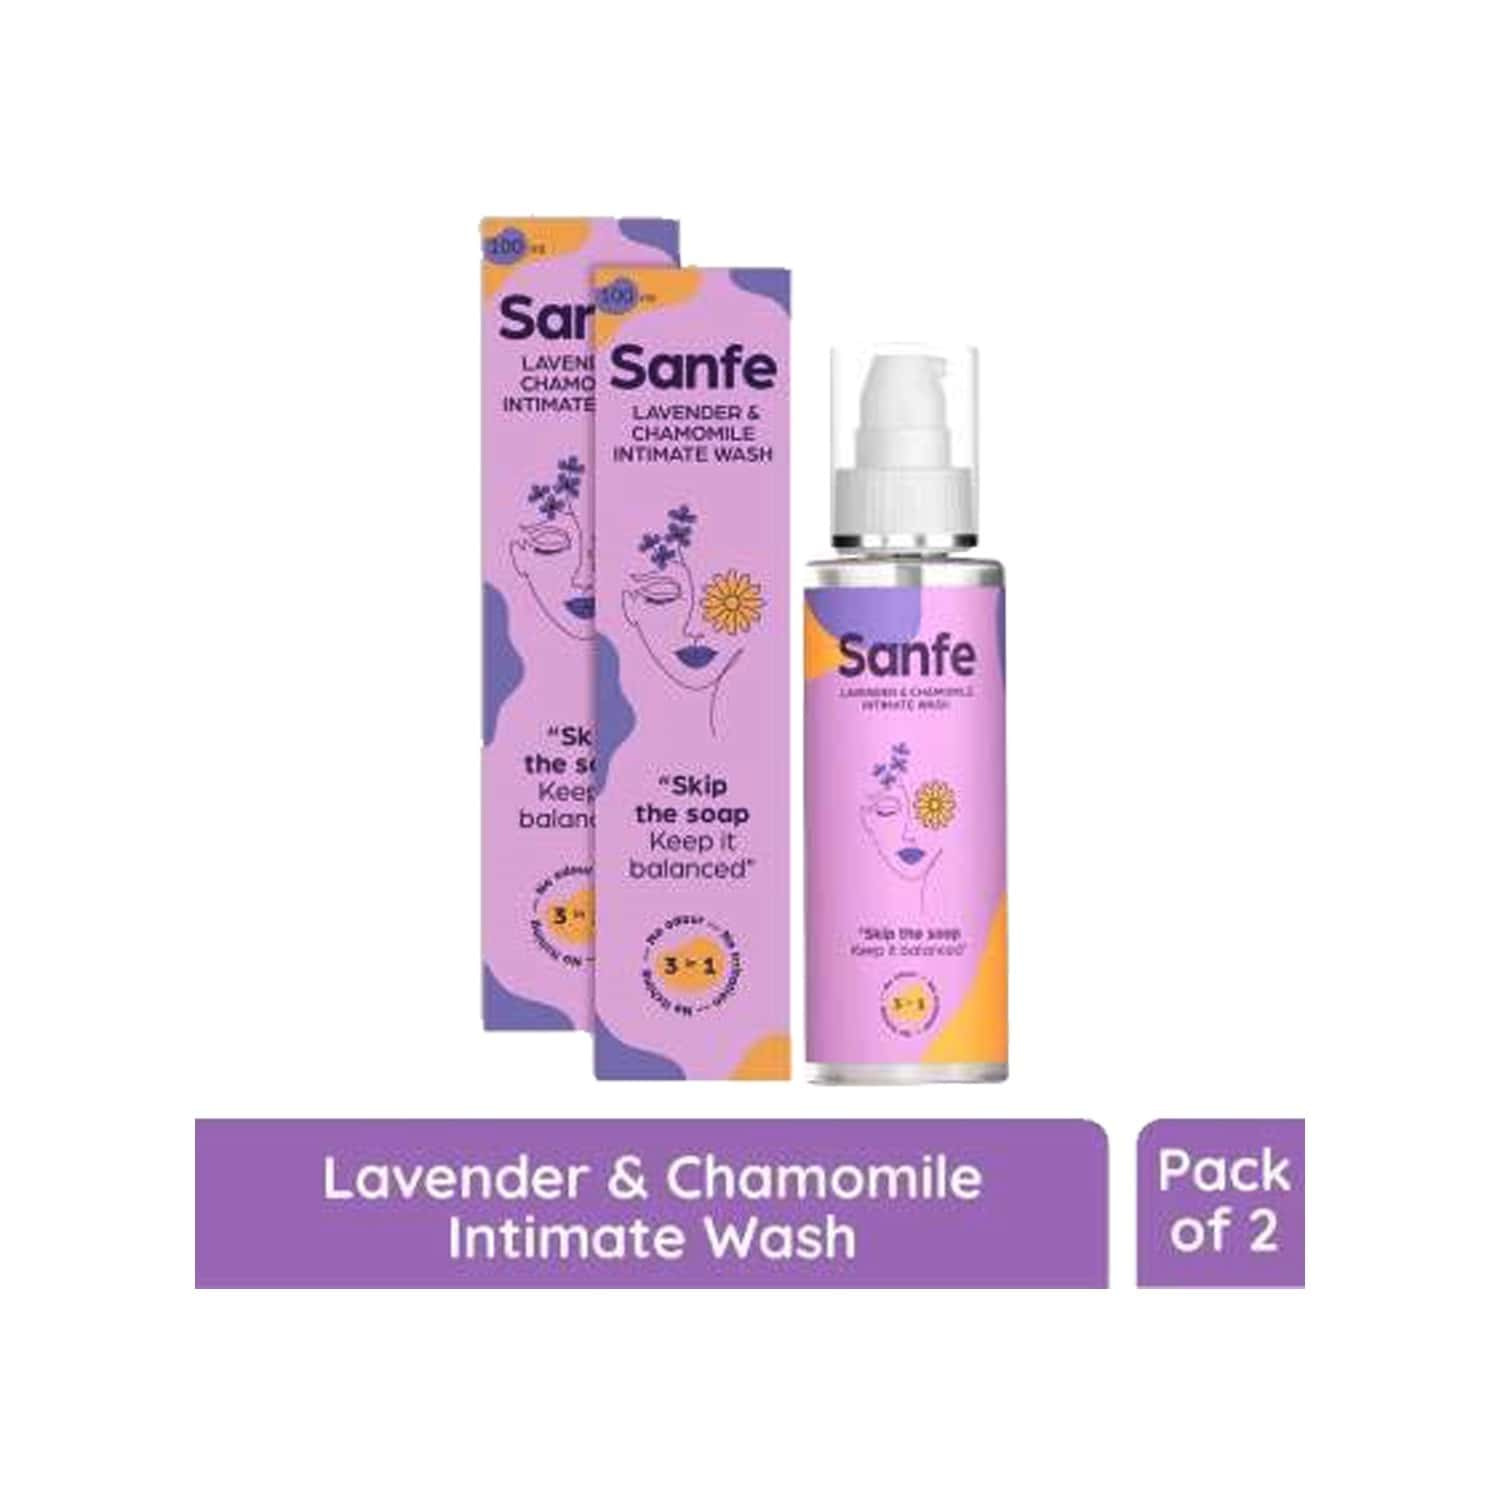 Sanfe Natural Intimate Wash, 3 In 1 - No Odour, No Itching, No Irritation - Lavender & Chamomile (100ml) - Pack Of 2